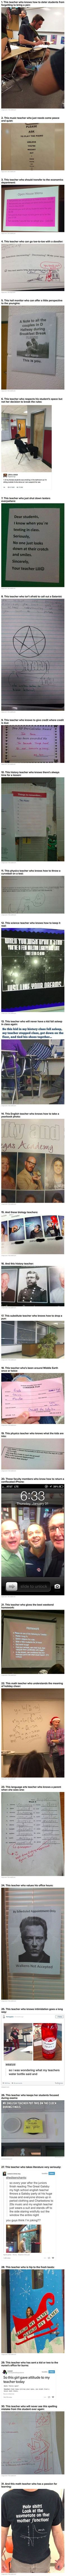 Here are some funny and nerdy teachers who make school interesting. - Here are some funny and nerdy teachers who make school interesting. The Effective Pictures We Offer - Funny Cute, The Funny, Hilarious, Funny Memes, Funny Pranks, Funny Kids, Haha, Teacher Humor, Math Teacher